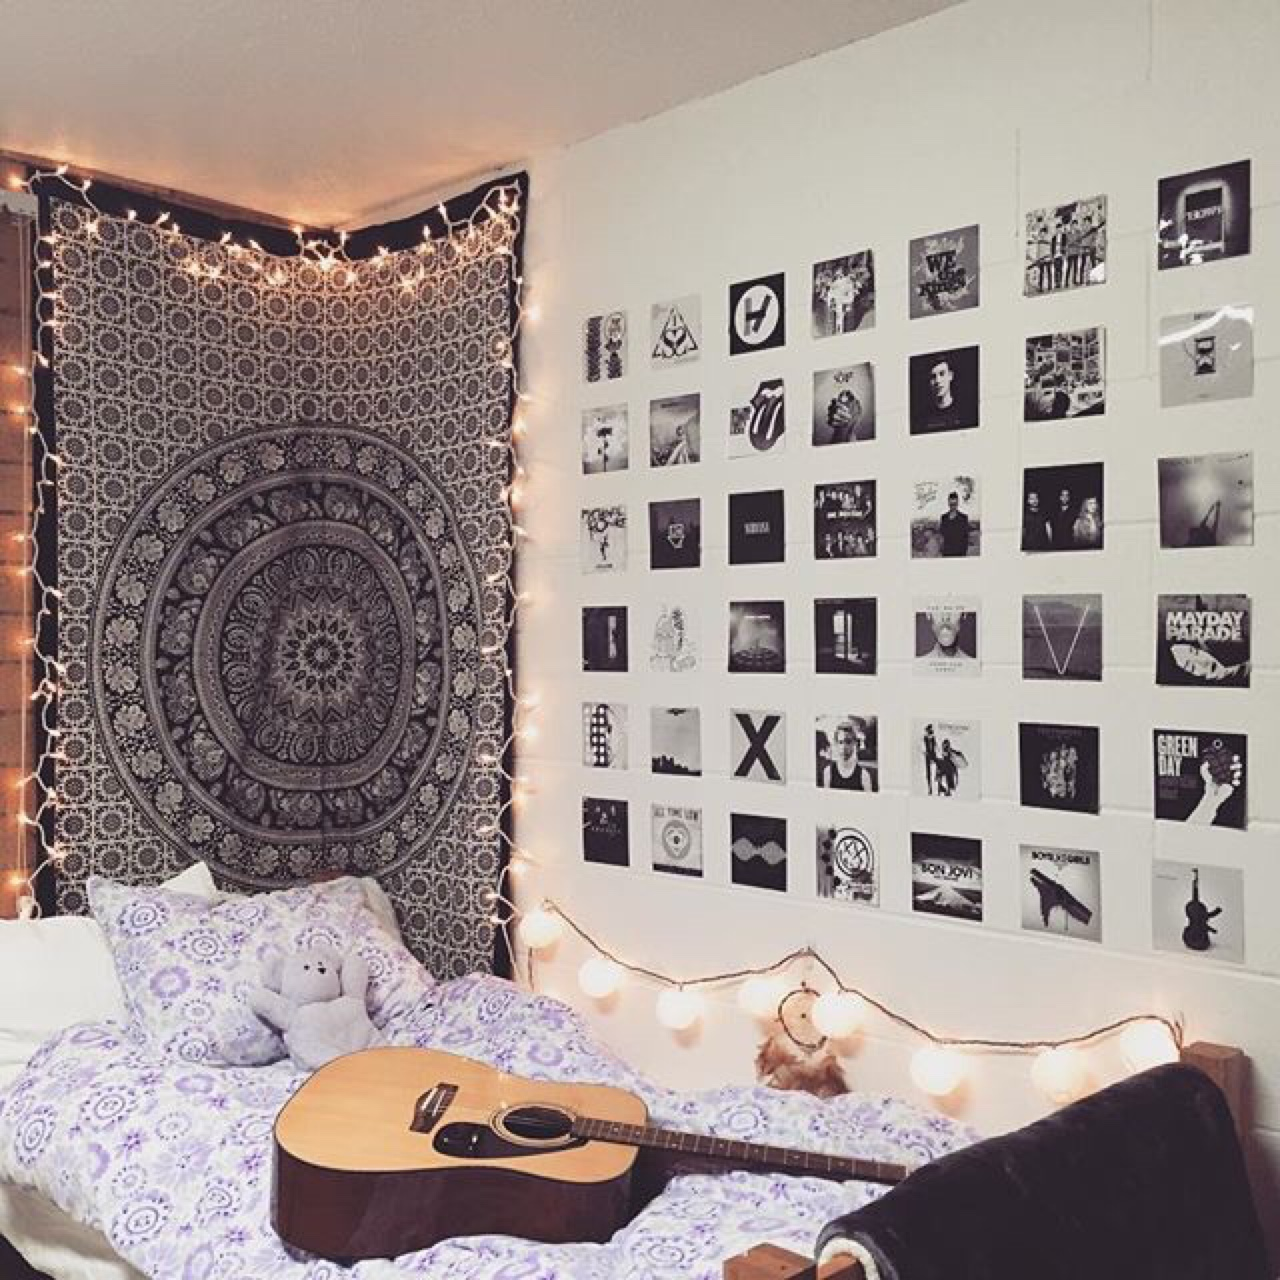 Tumblr bedroom ideas diy - This Is How You Can Convert Your Room Into A Beautiful Dorm Room Diy